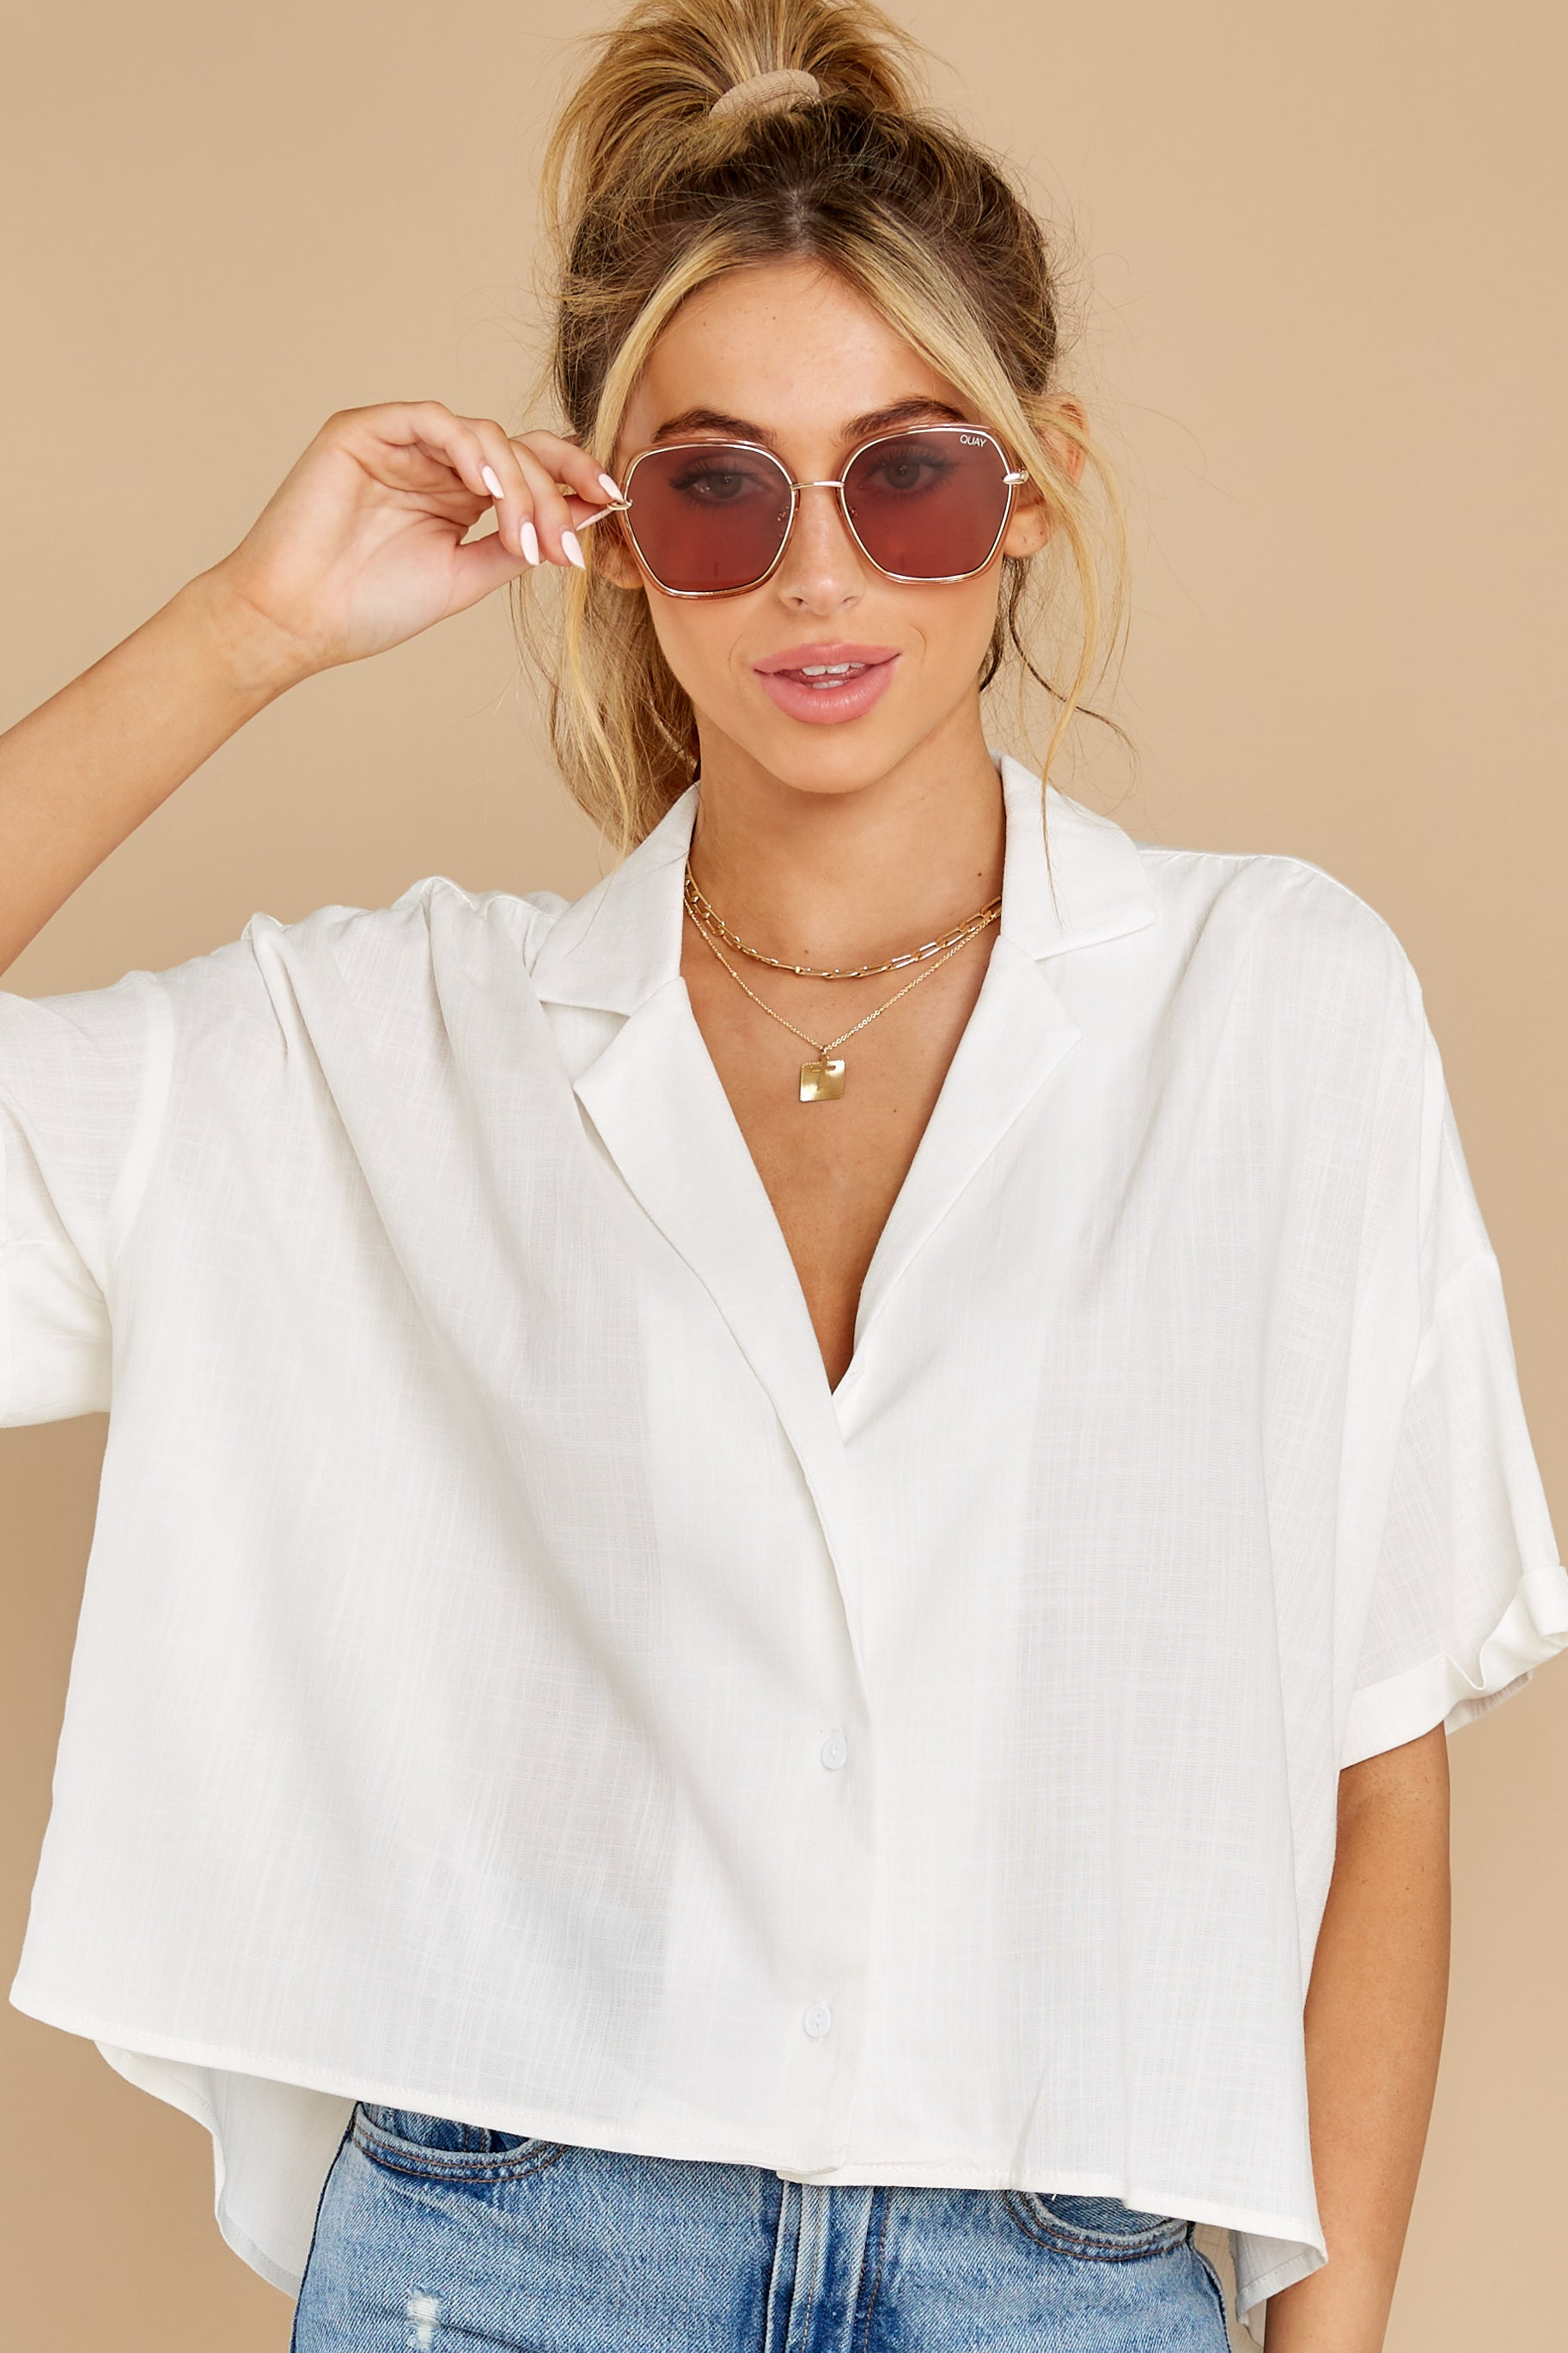 7 Love On You White Top at reddress.com